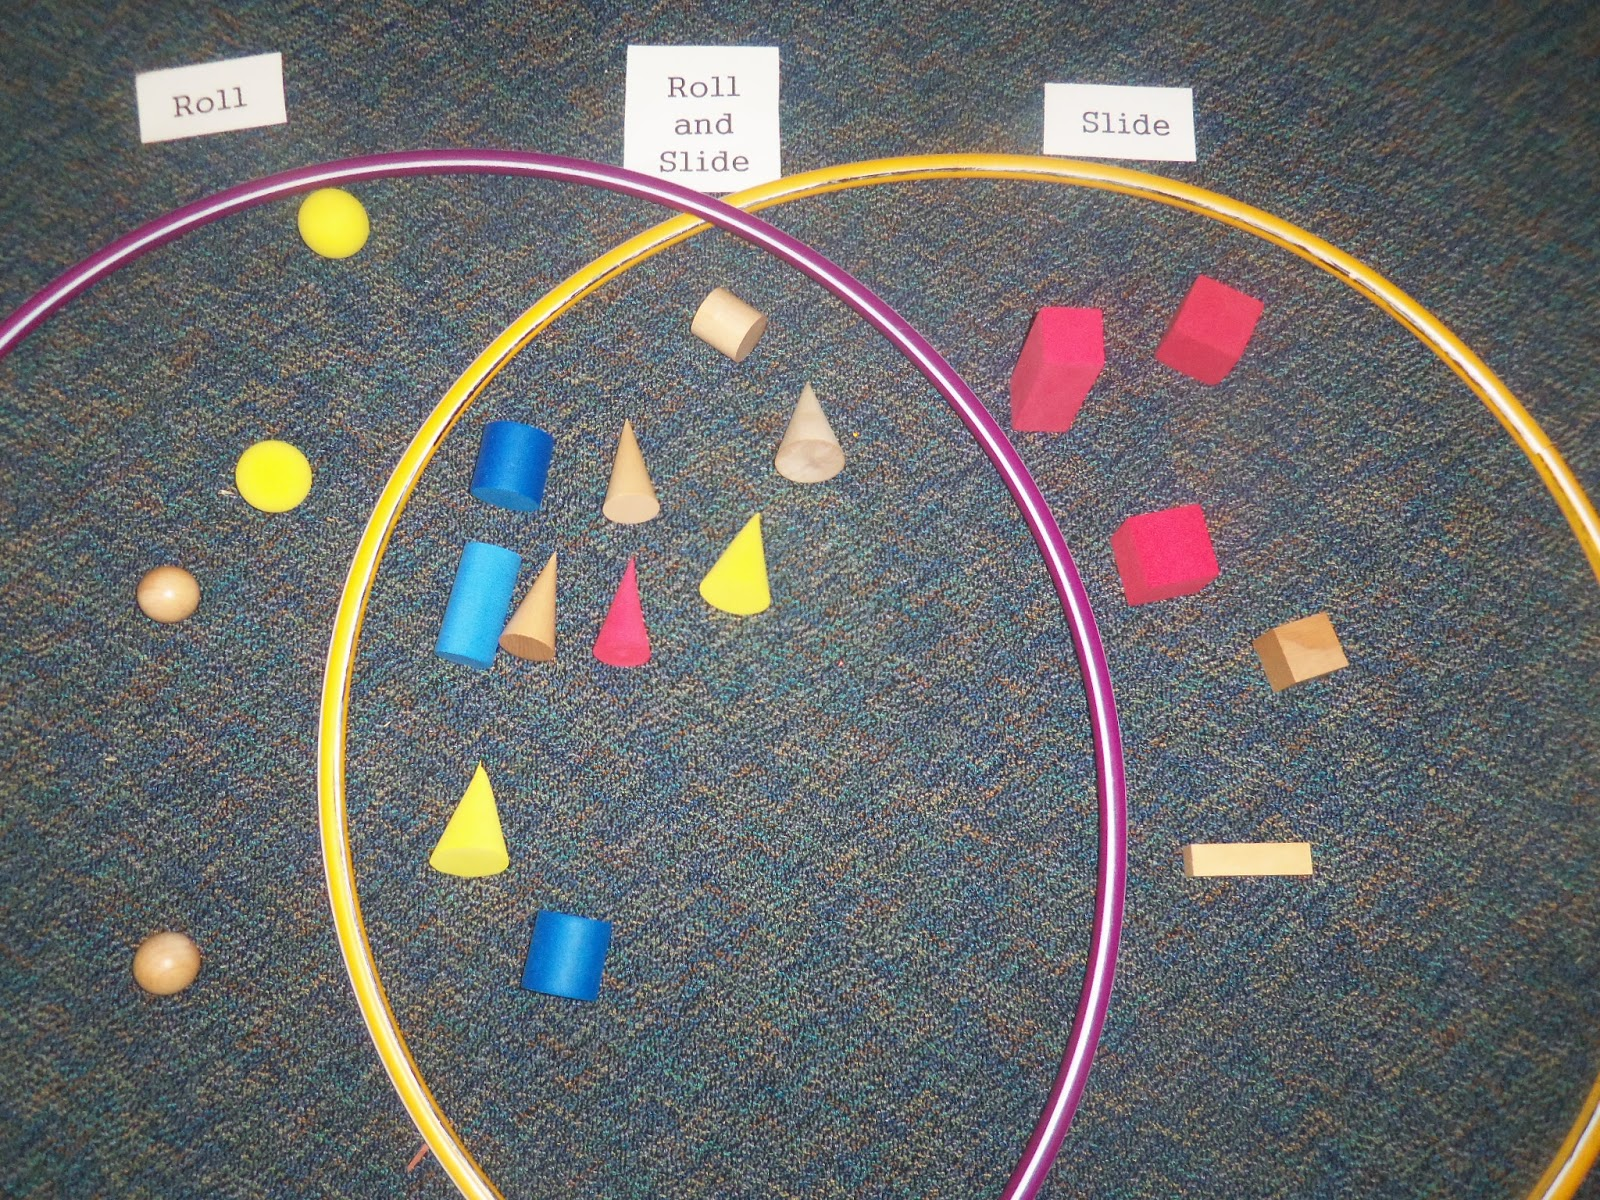 Kinder Garden: Mrs. Wood's Kindergarten Class: 3-D Shapes